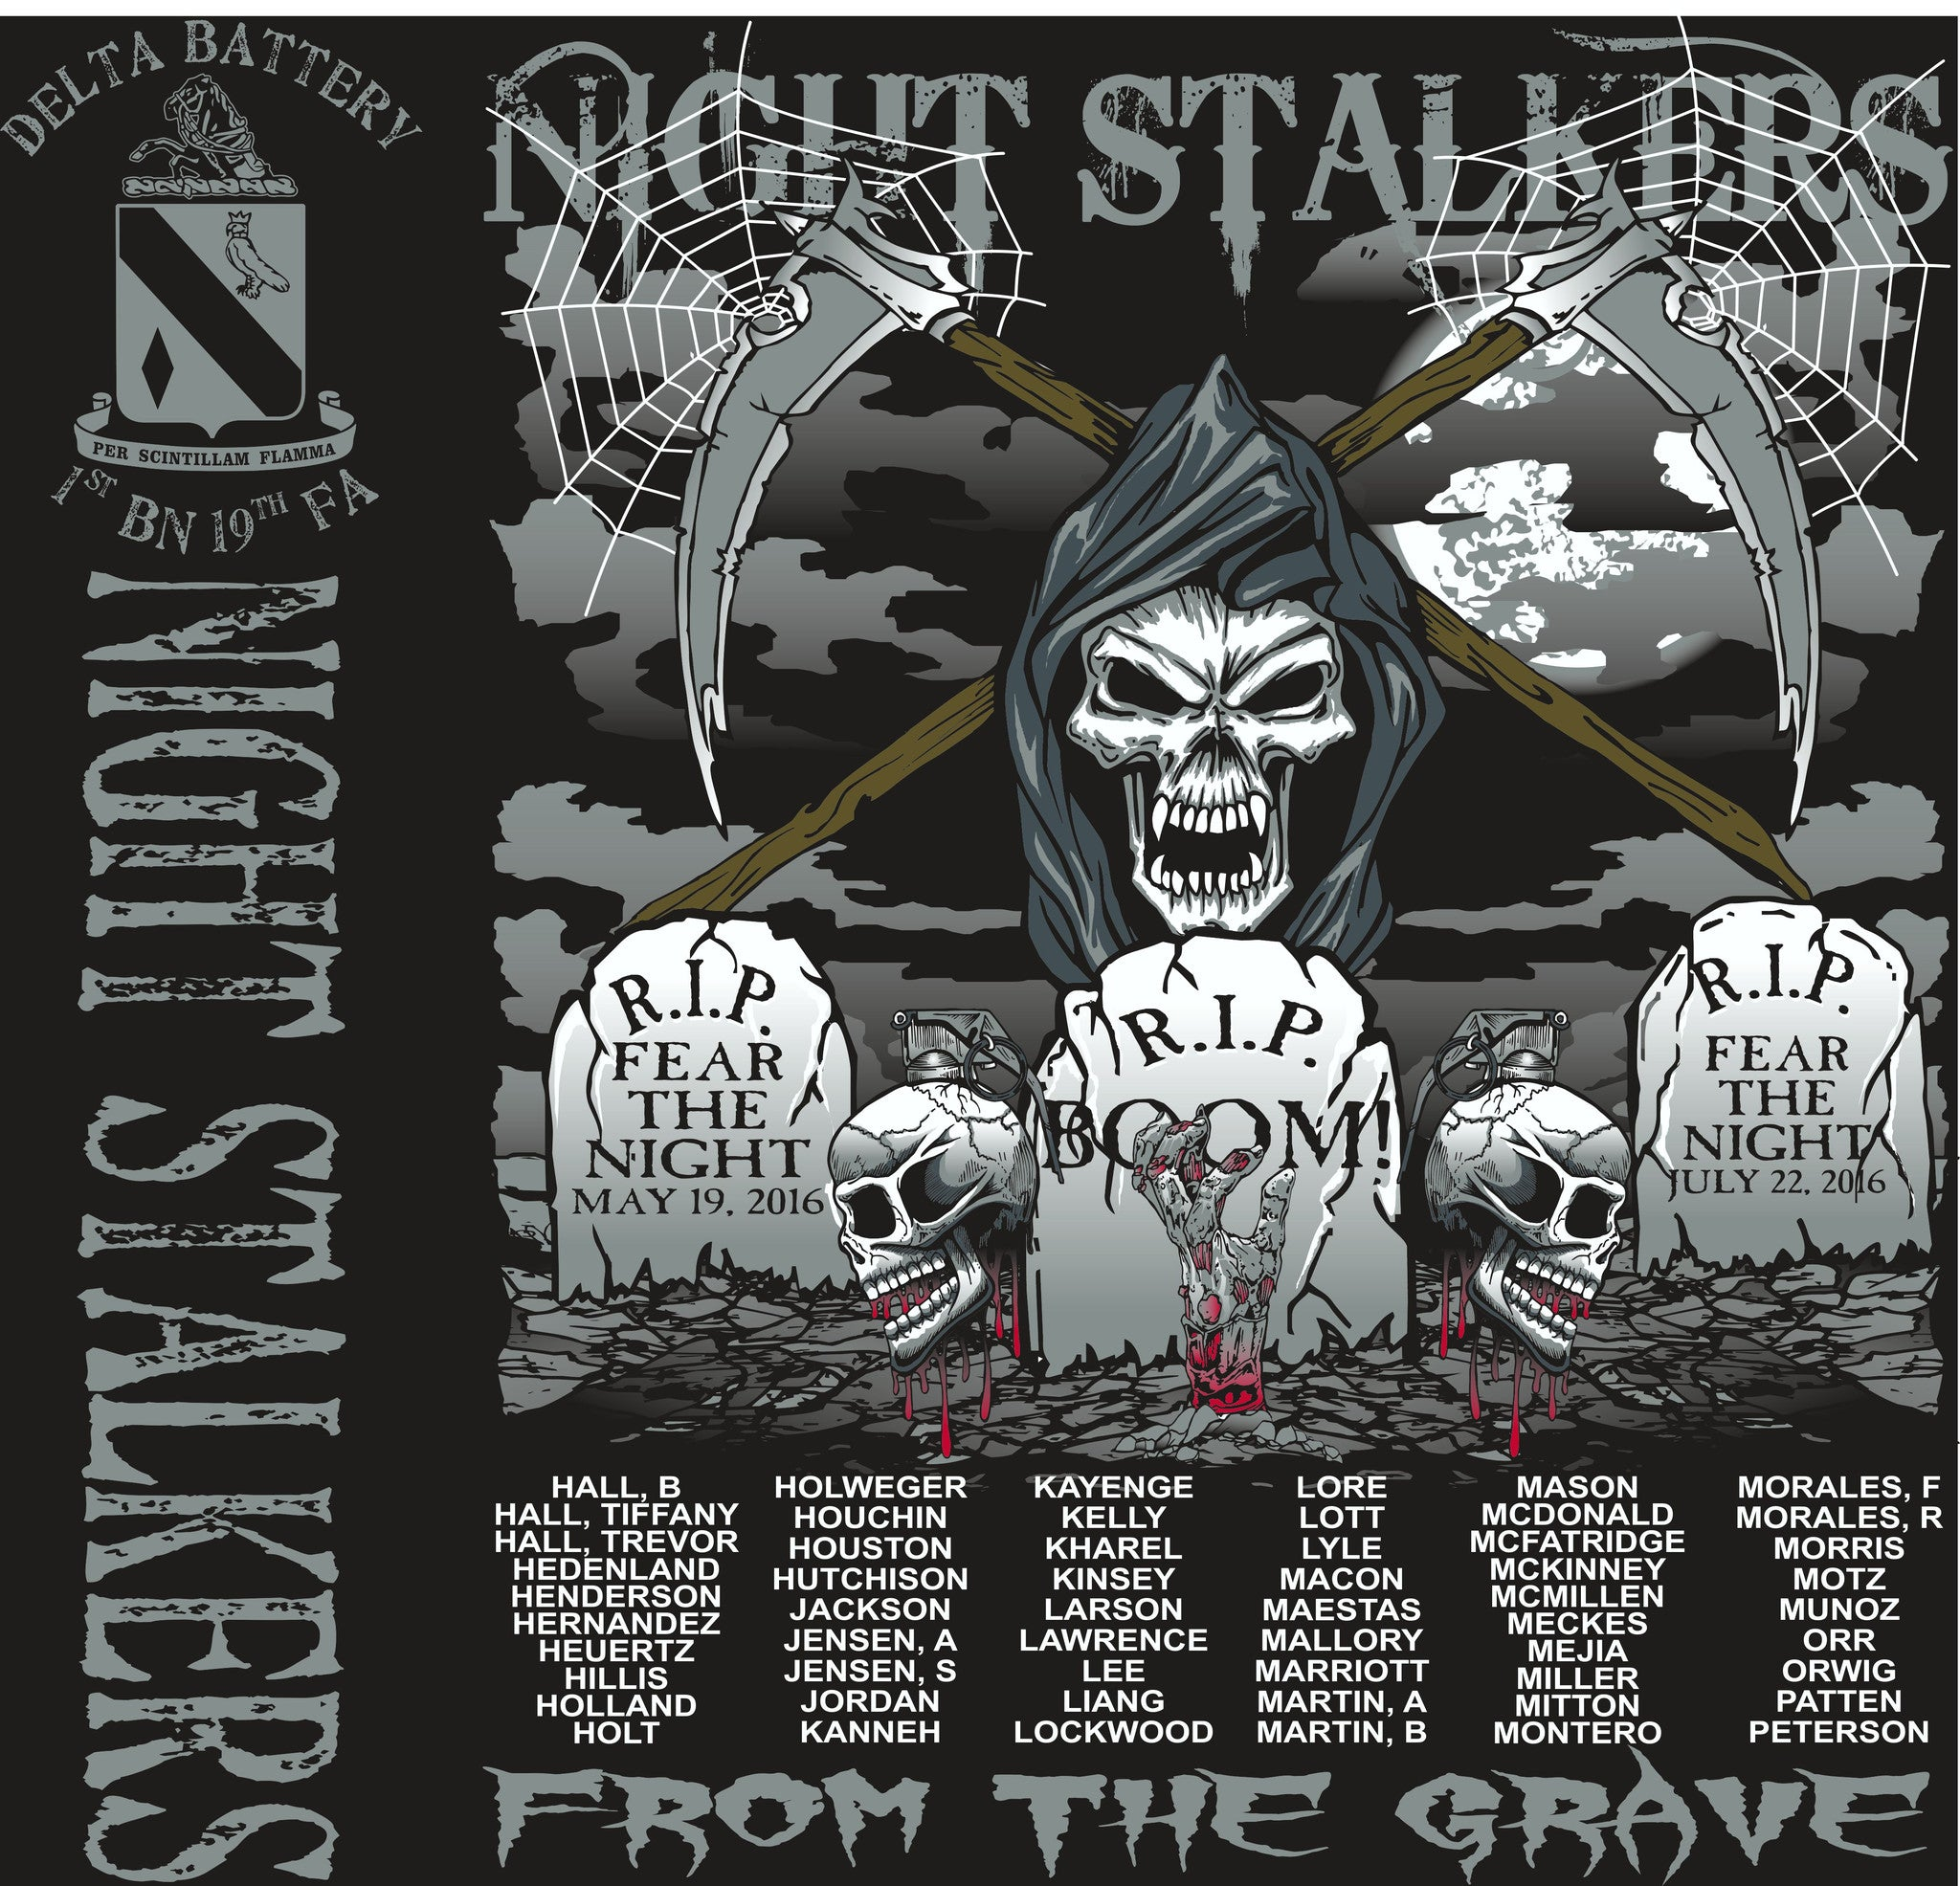 PLATOON SHIRTS (2nd generation print) DELTA 1st 19th NIGHT STALKERS JULY 2016